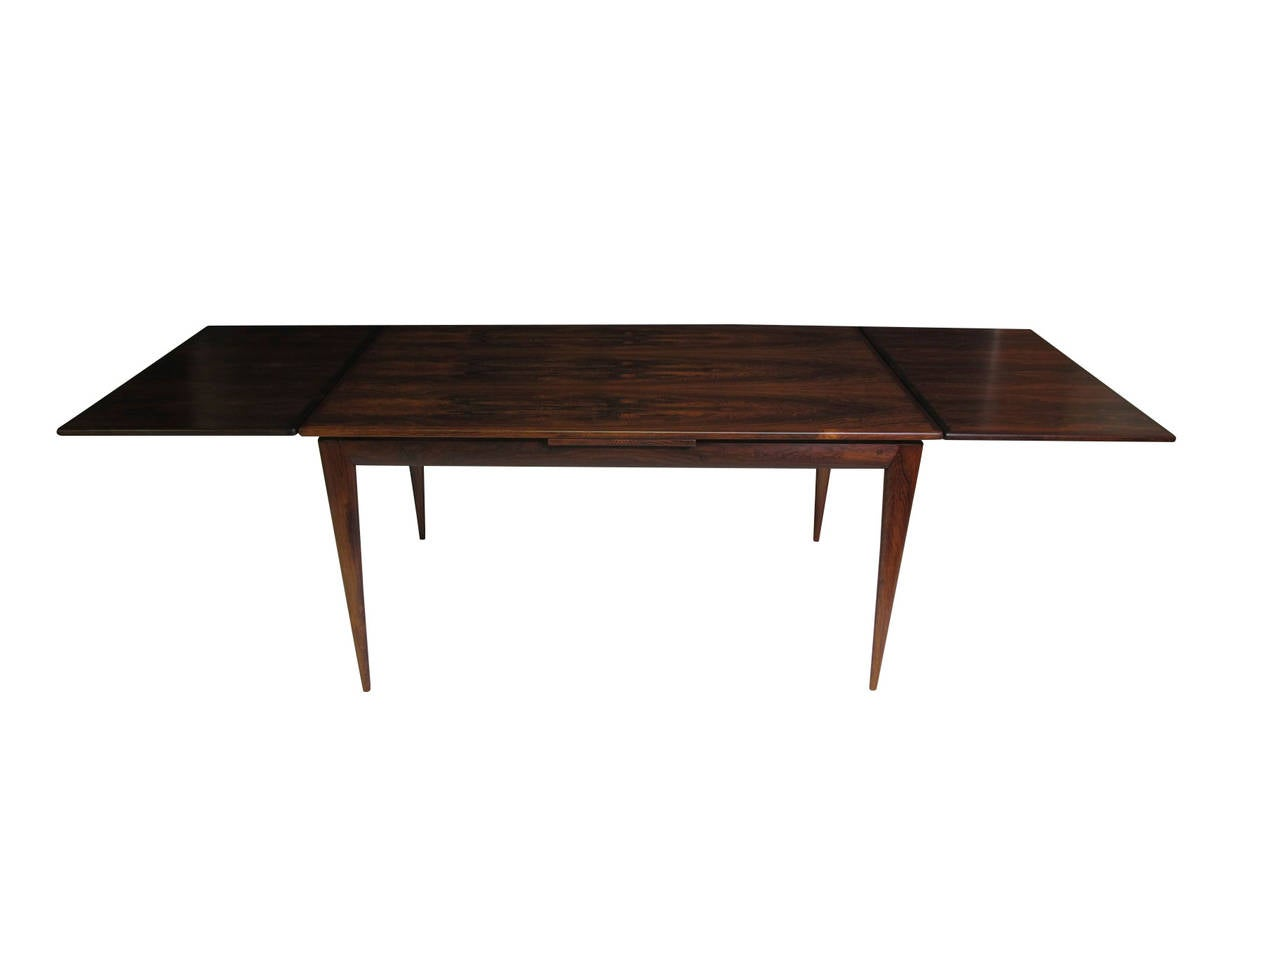 Niels otto moller danish rosewood dining table at 1stdibs - Dining table scandinavian ...